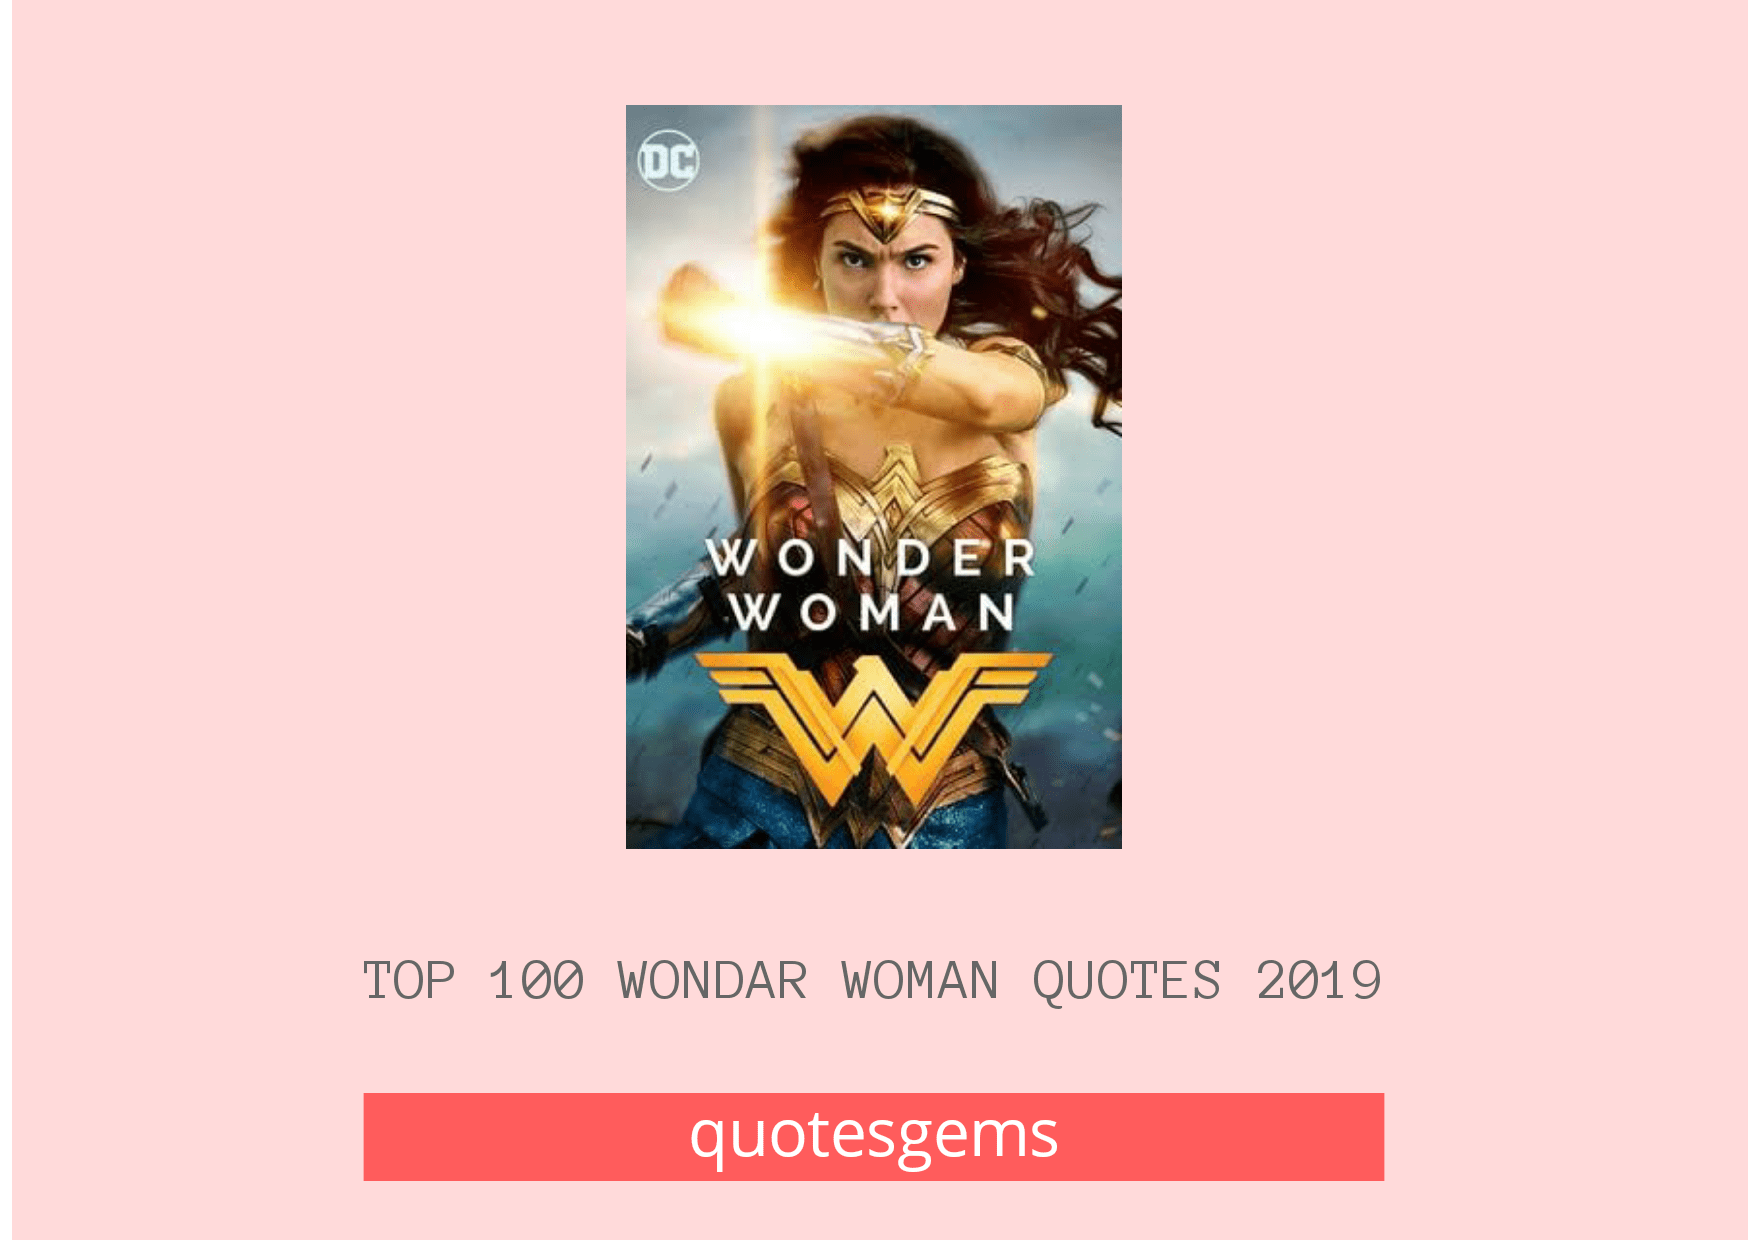 Wonder Woman Quotes 2019